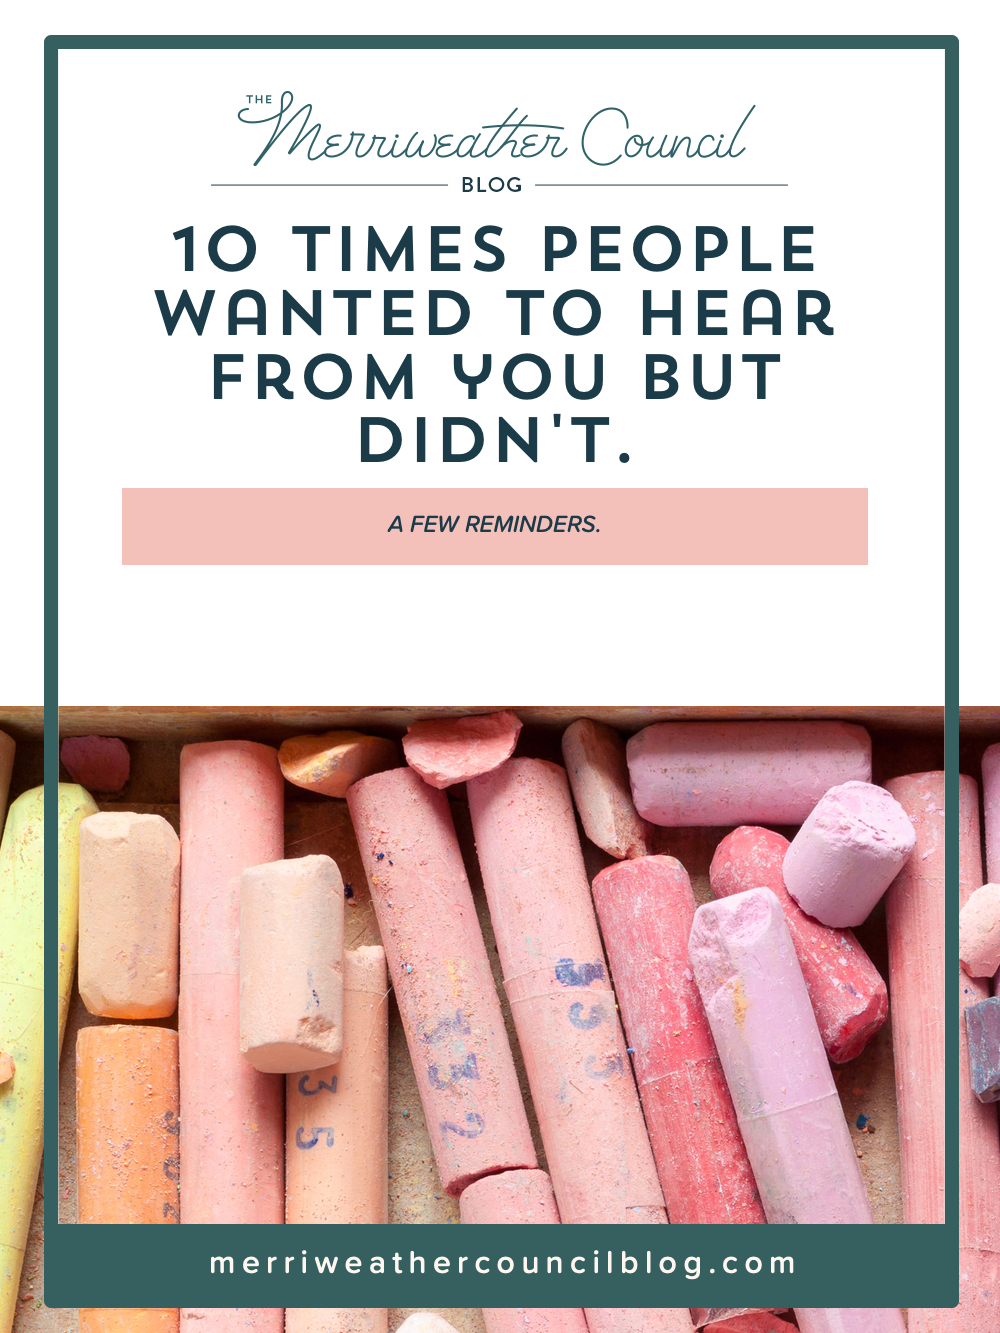 10 Time People Want to Hear From You | The Merriweather Council Blog